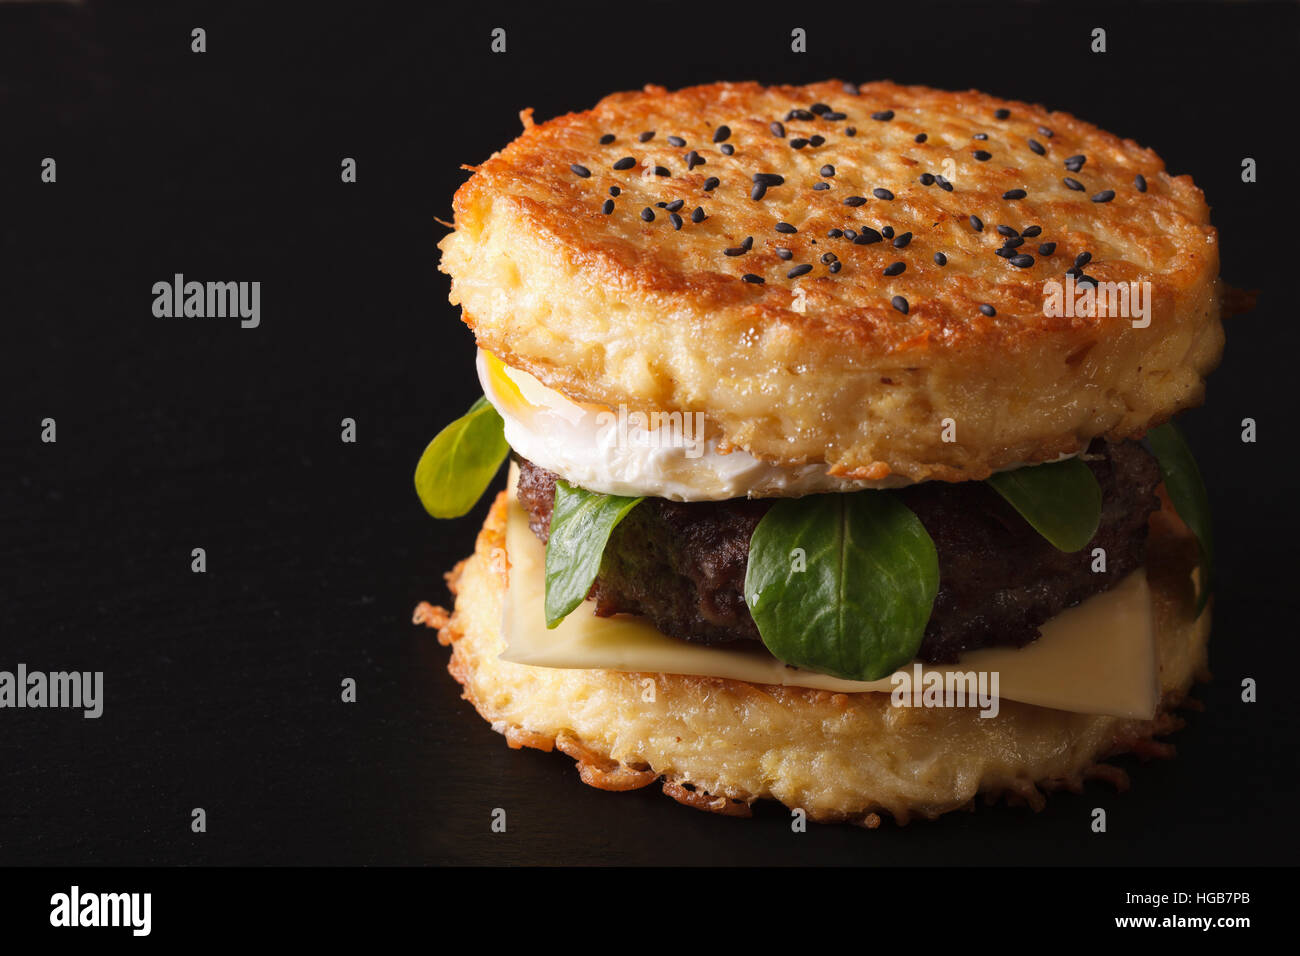 New ramen burger with beef and eggs close-up on a black background. horizontal - Stock Image